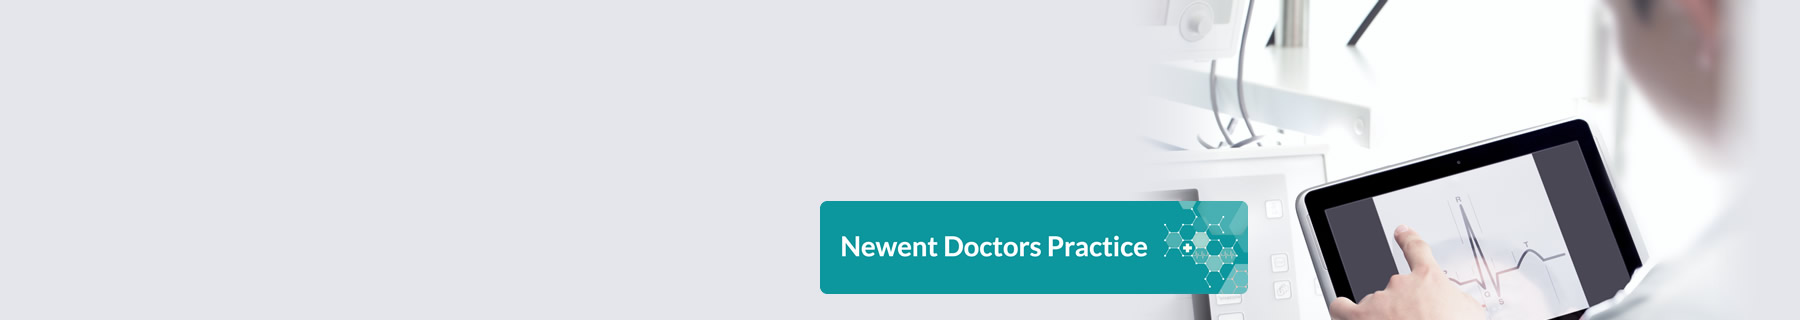 Surgery Connect provides Newent Doctors Practice with the call capacity they need, with endless scalability future proofing against growing demand.